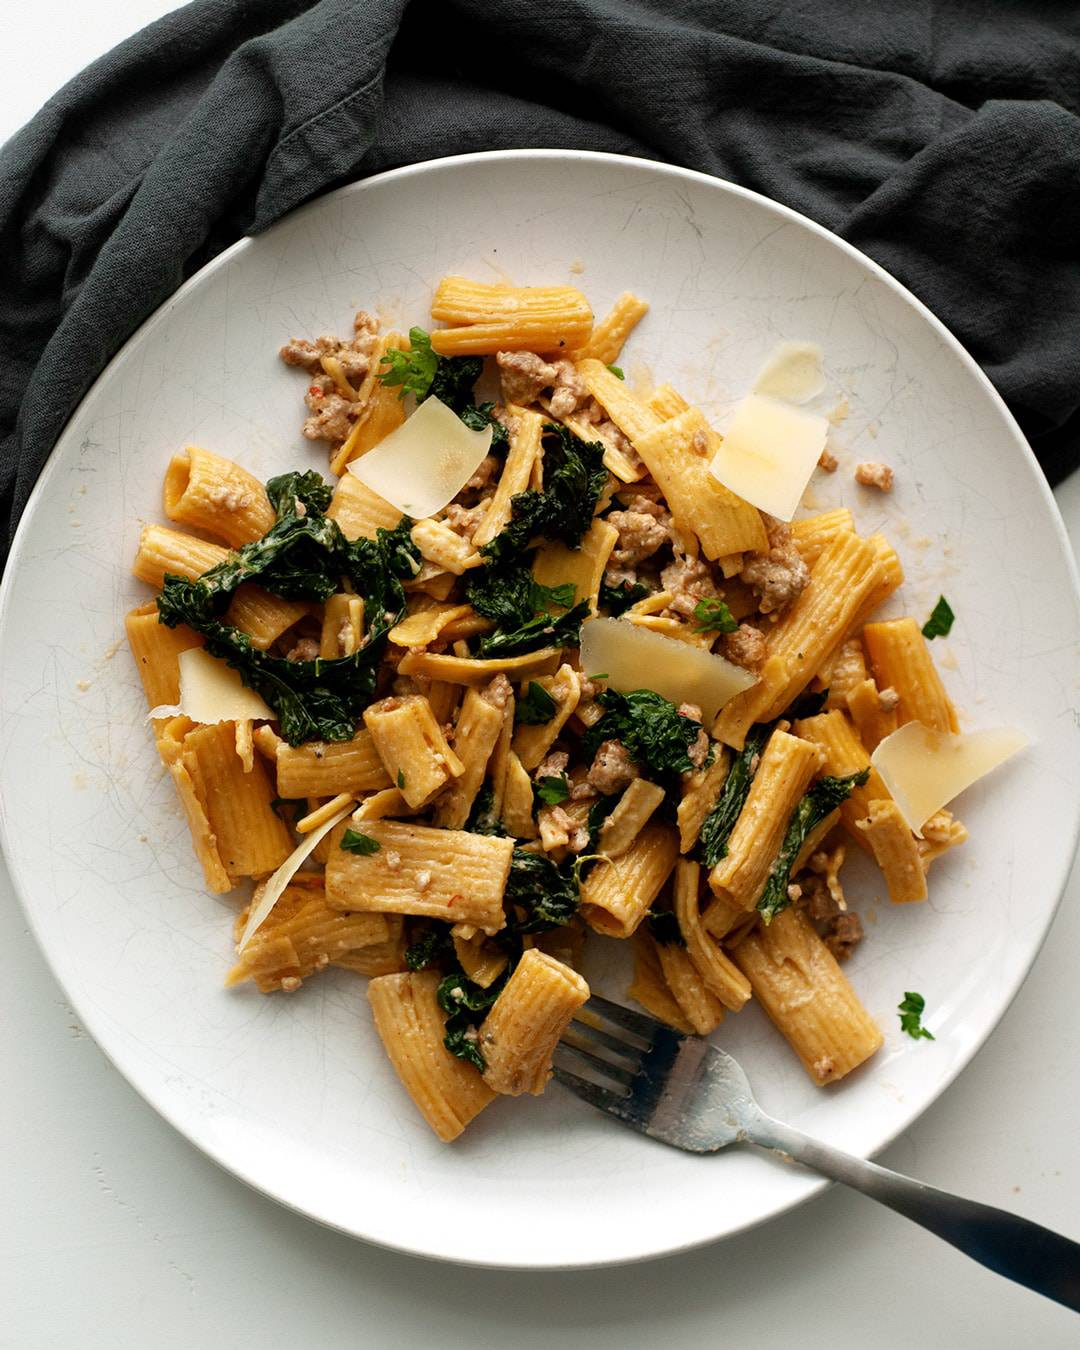 Spicy Sausage and Cream Sauce Pasta with Kale